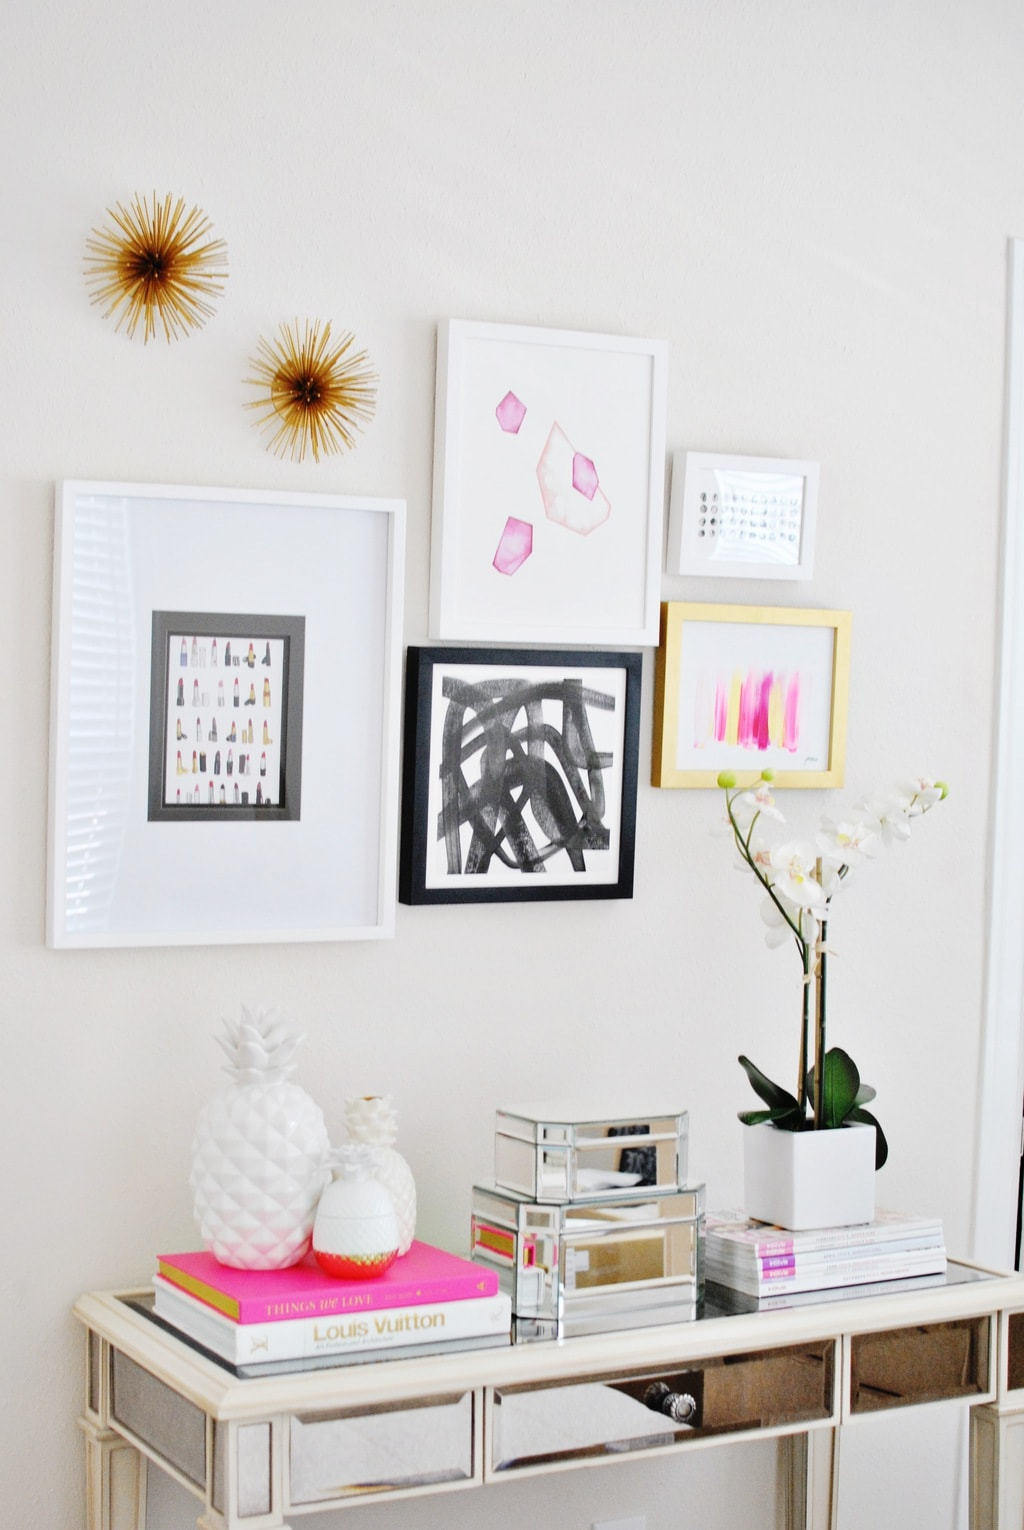 5 Minute Gallery Wall | Chronicles of Frivolity